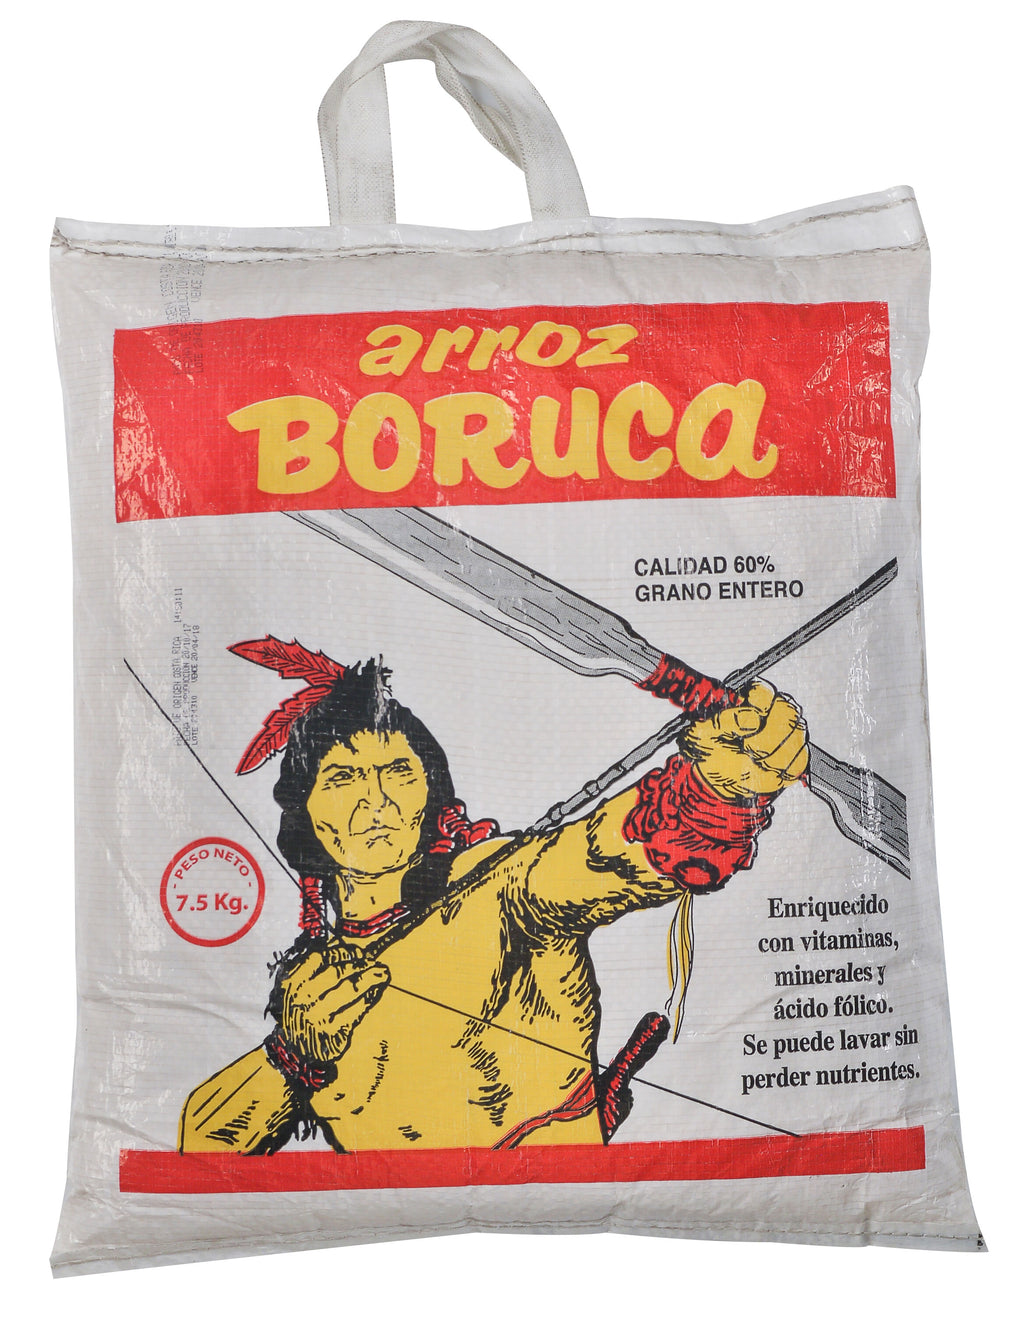 ARROZ BORUCA 60% GRANO ENTERO